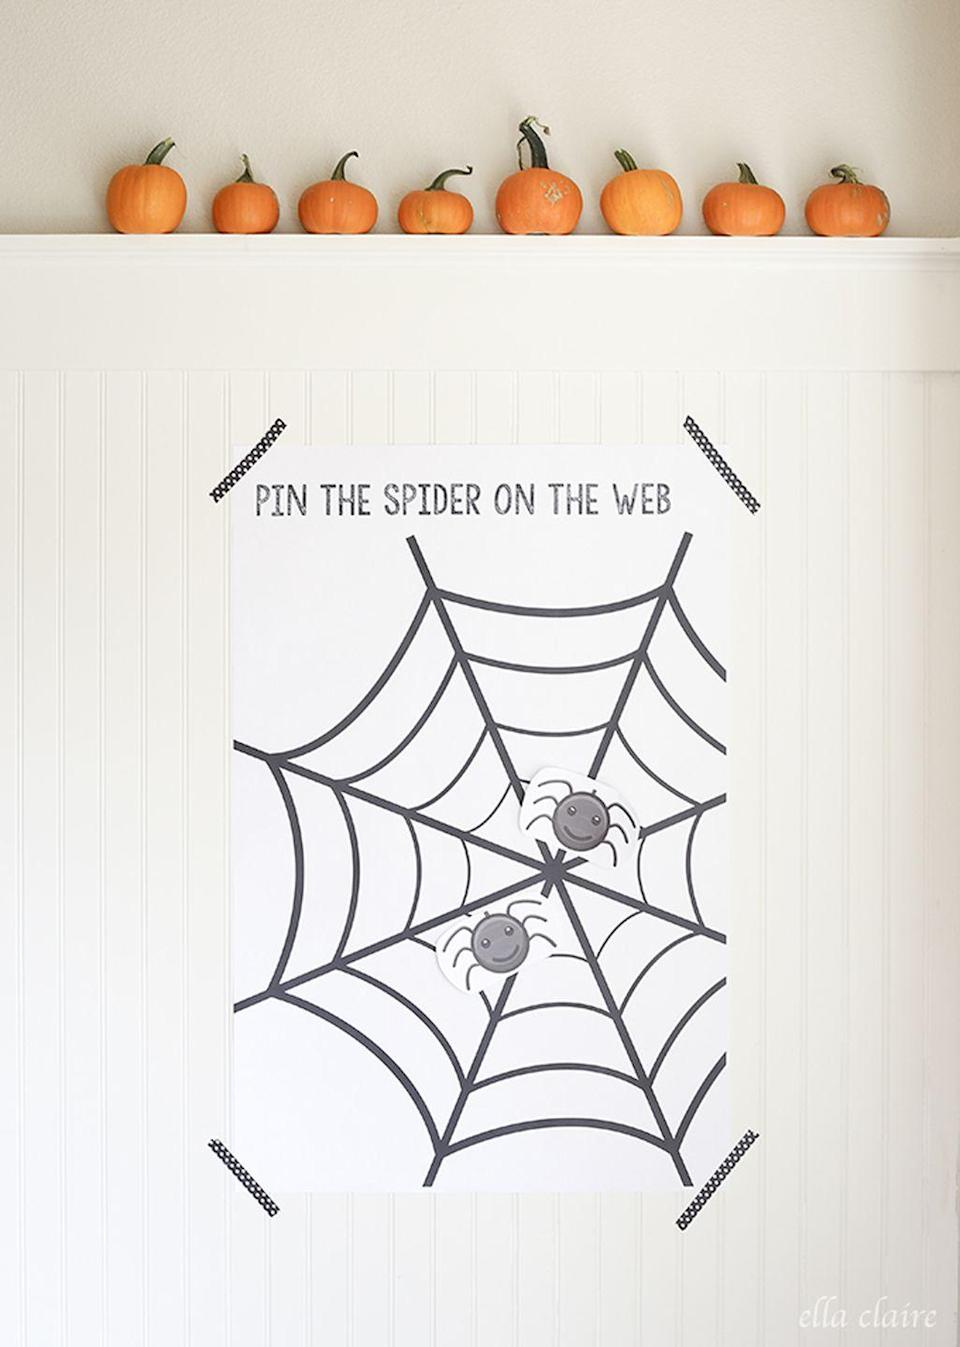 "<p>This game is super simple to make and play. See who can put the spider closest to the center of the web—no peeking!<br></p><p><strong>Get the tutorial at <a href=""https://www.ellaclaireinspired.com/pin-spider-web-free-printable/"" rel=""nofollow noopener"" target=""_blank"" data-ylk=""slk:Ella Claire"" class=""link rapid-noclick-resp"">Ella Claire</a>.</strong></p><p><a class=""link rapid-noclick-resp"" href=""https://www.amazon.com/ALLYDREW-Washi-Rolls-Masking-Tapes/dp/B07CQDY81J?tag=syn-yahoo-20&ascsubtag=%5Bartid%7C2139.g.34440360%5Bsrc%7Cyahoo-us"" rel=""nofollow noopener"" target=""_blank"" data-ylk=""slk:SHOP TAPE"">SHOP TAPE</a><br></p>"